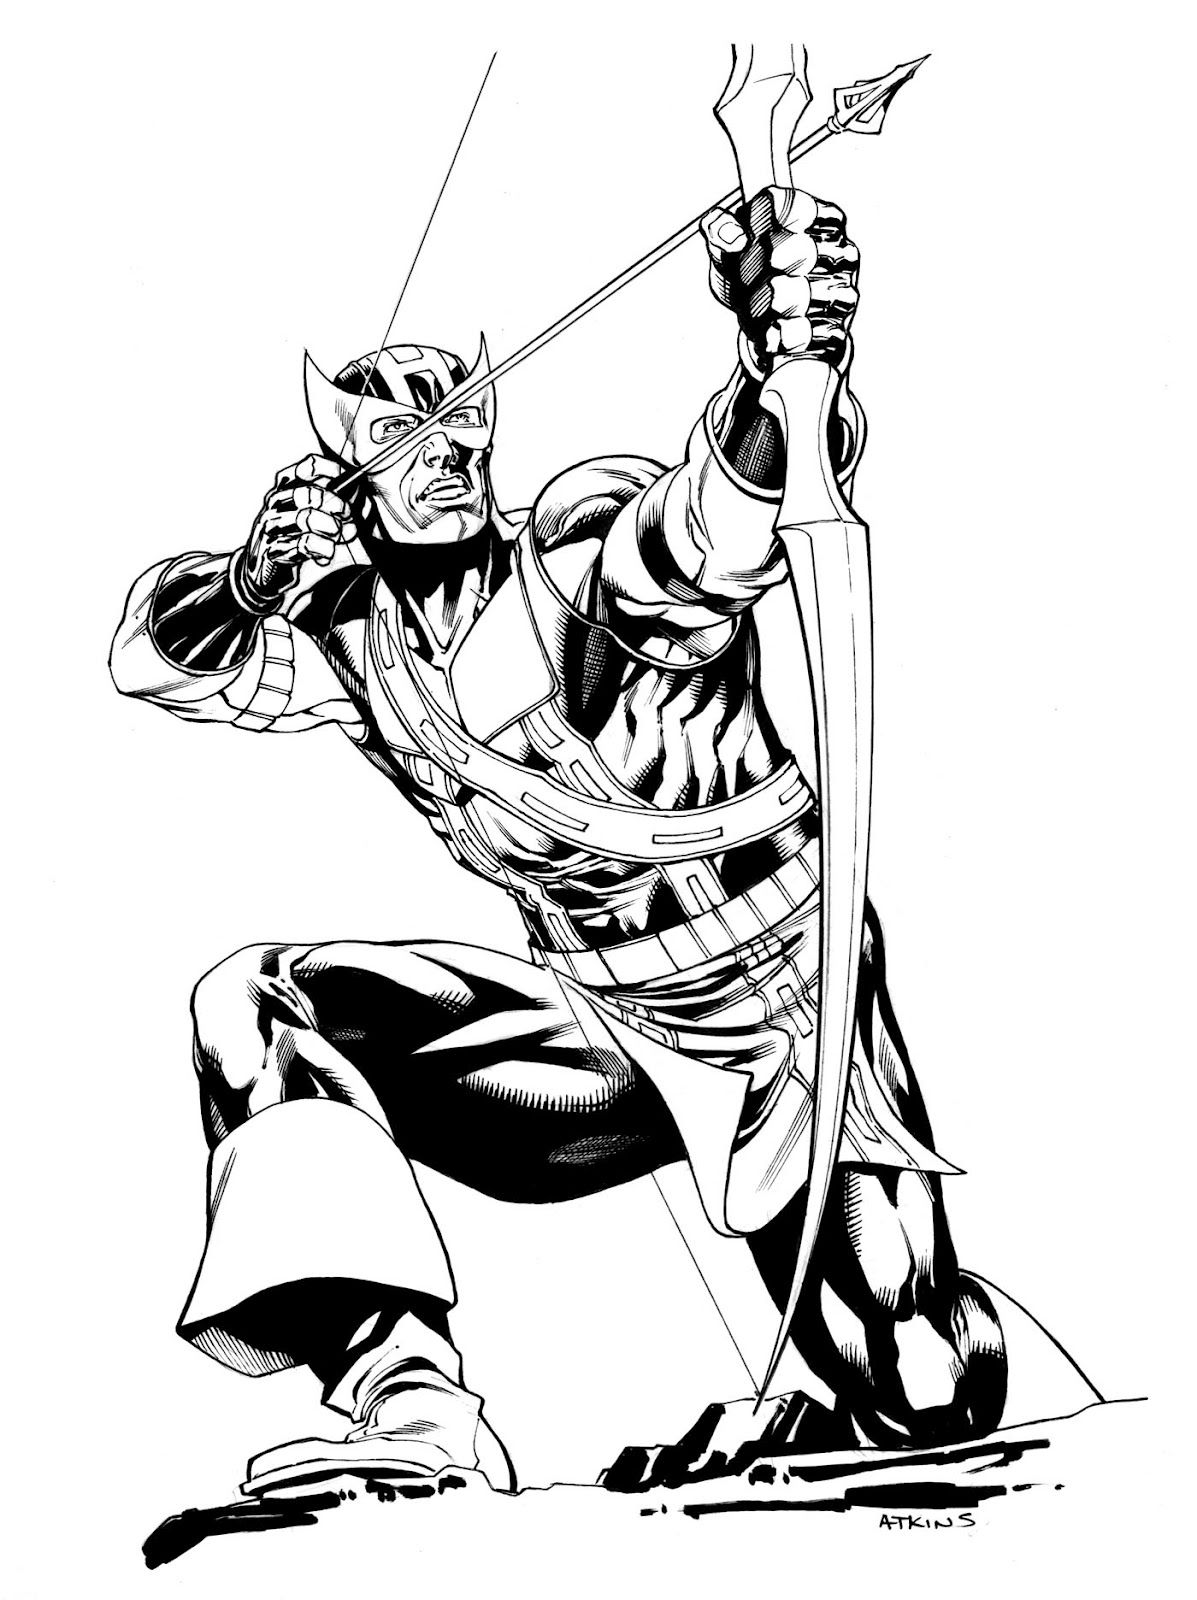 Robert atkins art avengers hawkeye comic book for Marvel hawkeye coloring pages